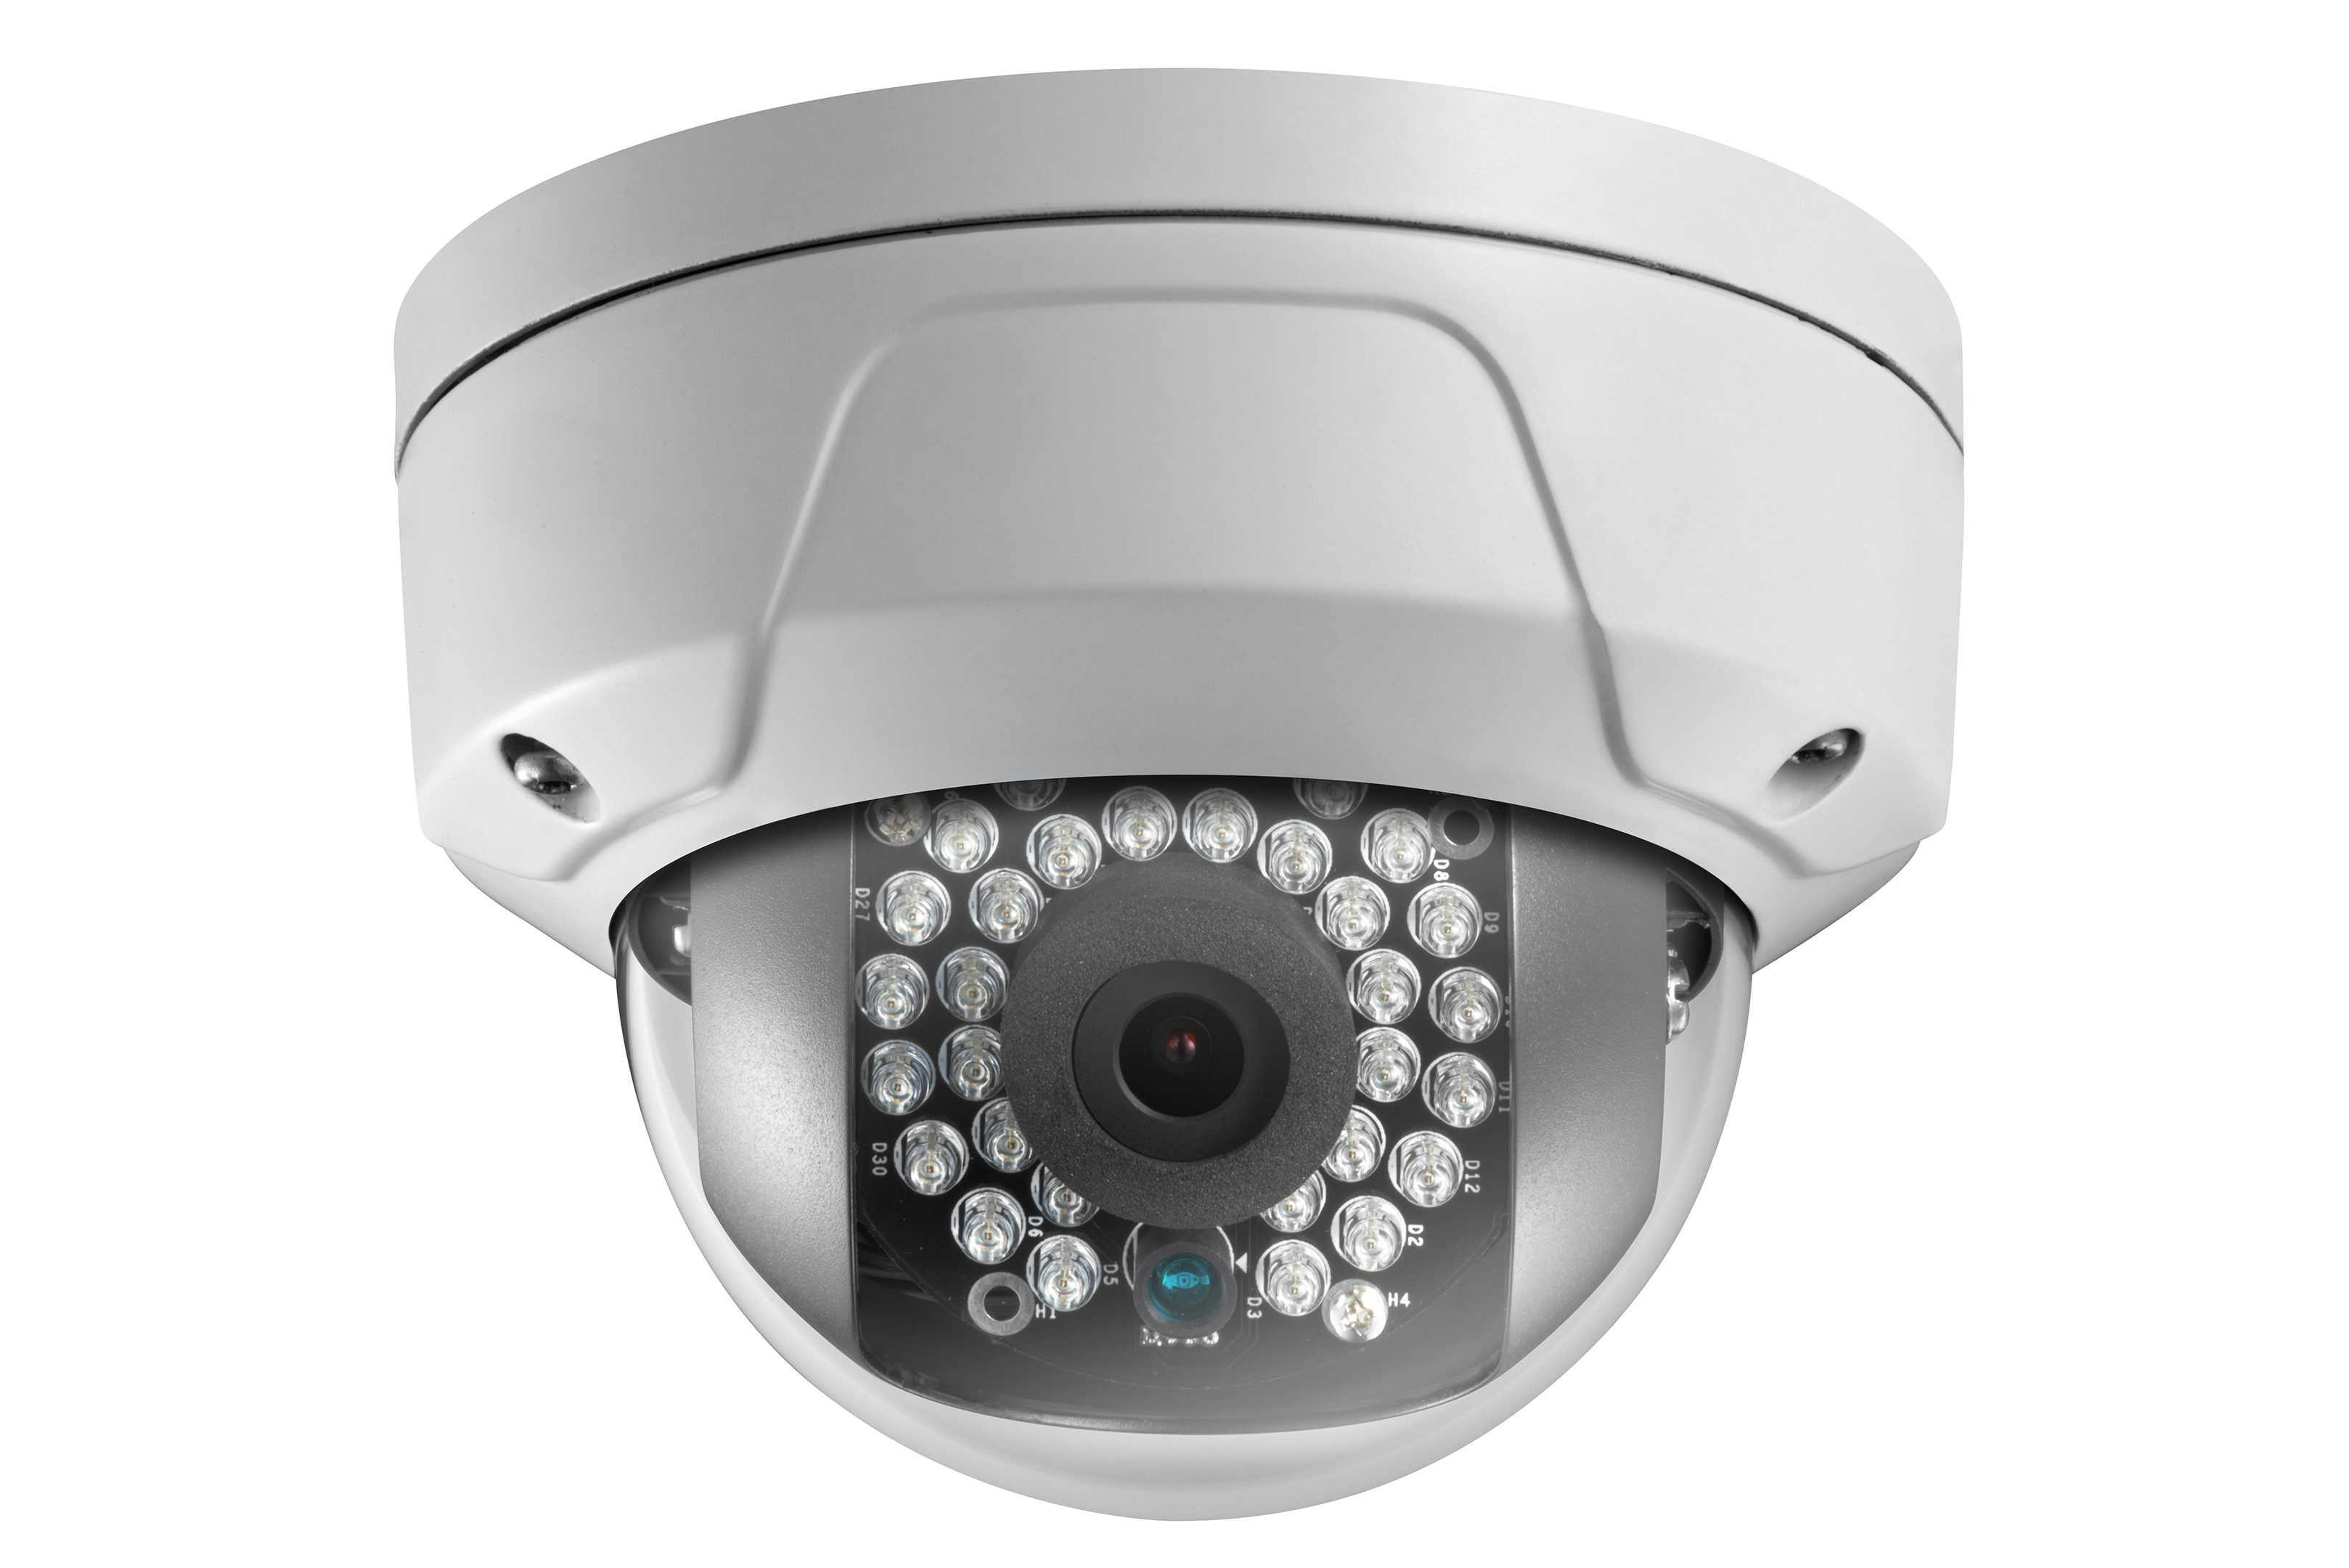 hikvision hiwatch ipc d140 4mp ip vandal dome camera with 30m ir and poe. Black Bedroom Furniture Sets. Home Design Ideas